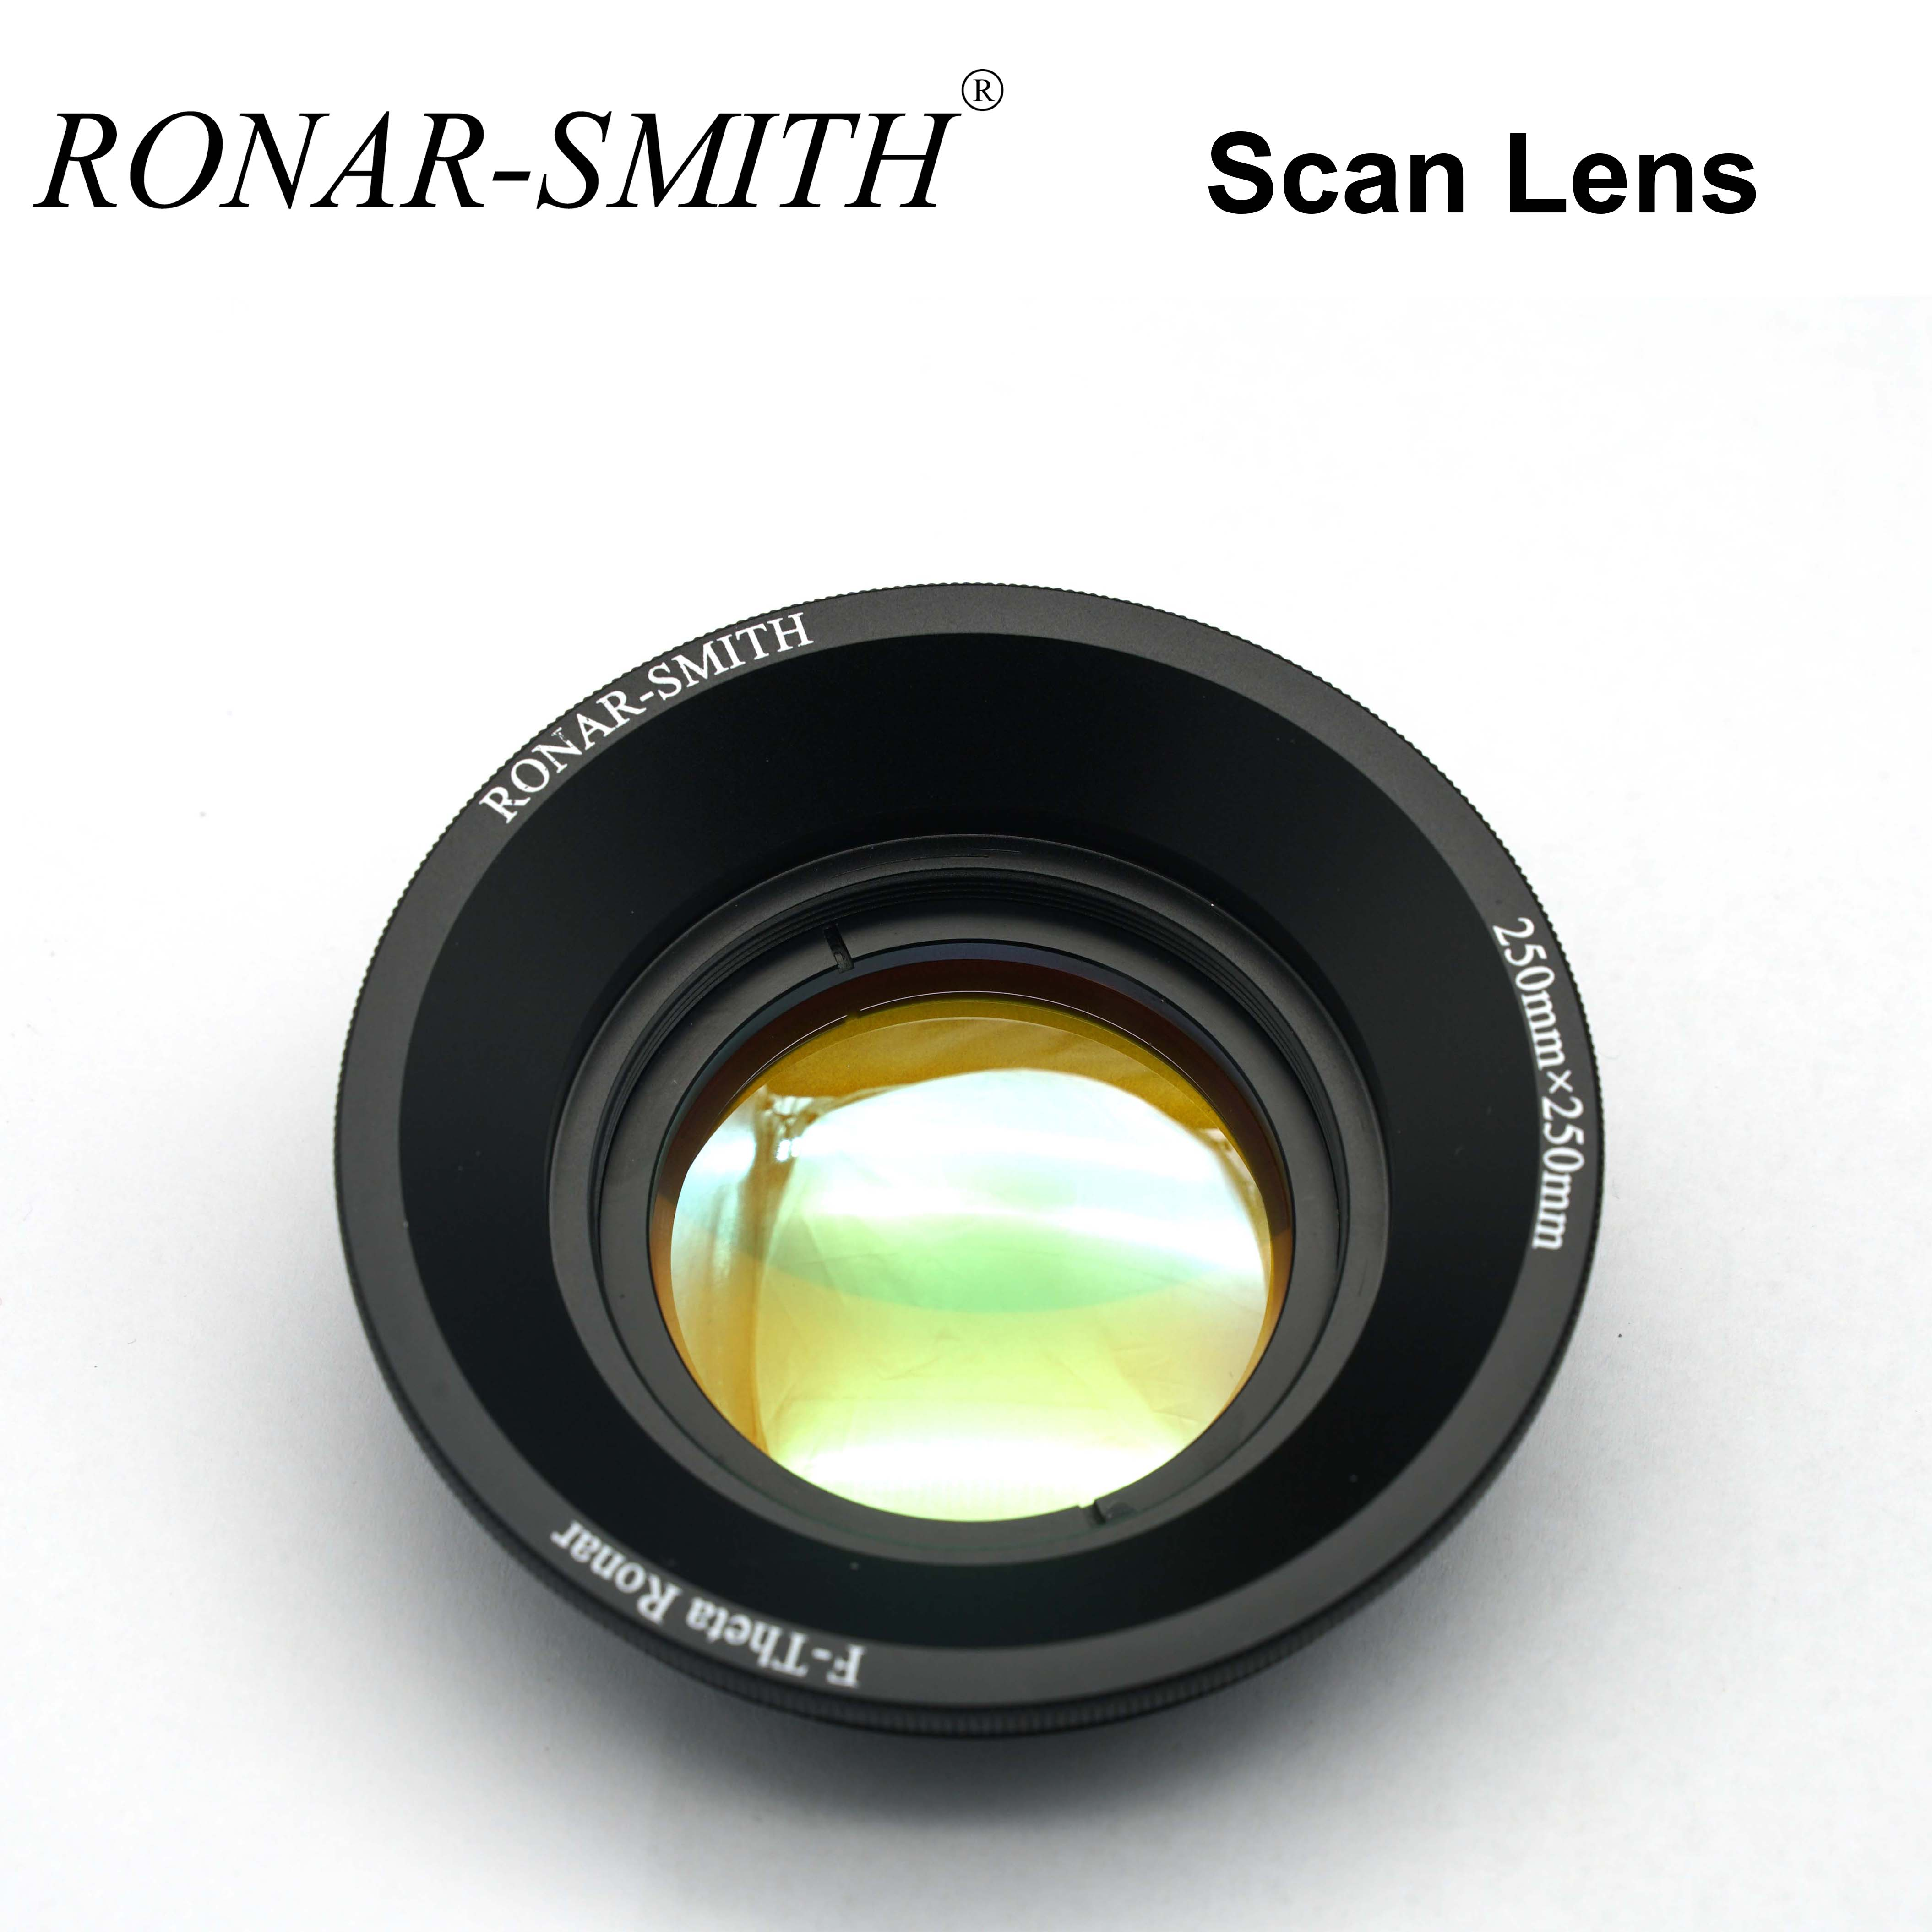 RONAR-SMITH WELLENLÄNGE OPEX CO2 Scan Lesn F-theta Objektiv 10600nm 10,6-70-100 10,6-110-150 10,6-140-200 10,6-175-250 10,6-215-300 image